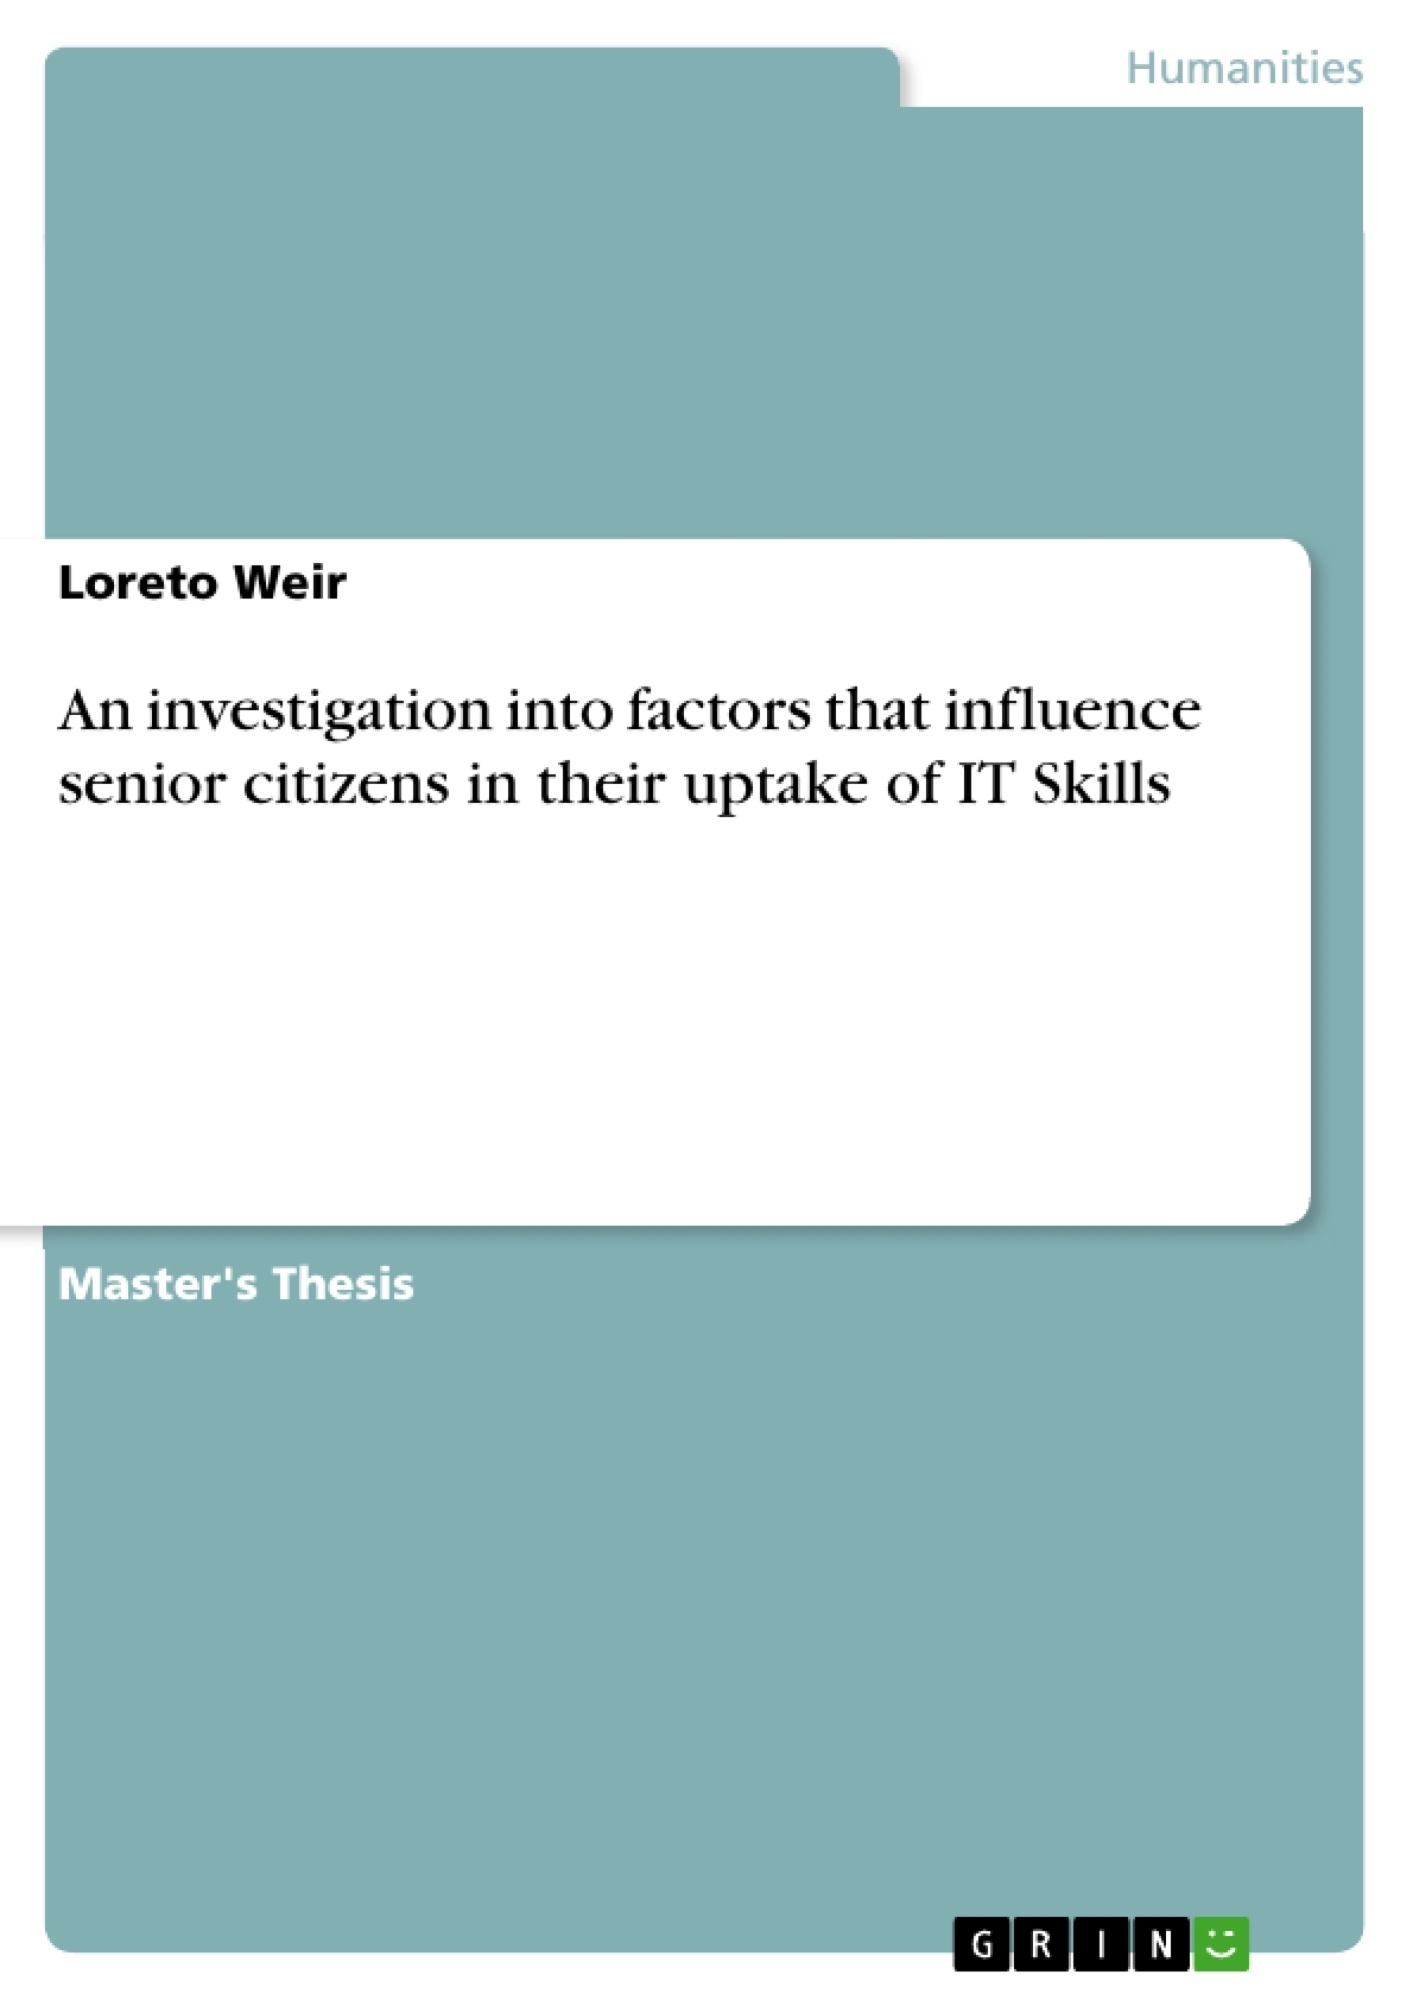 Title: An investigation into factors that influence senior citizens in their uptake of IT Skills